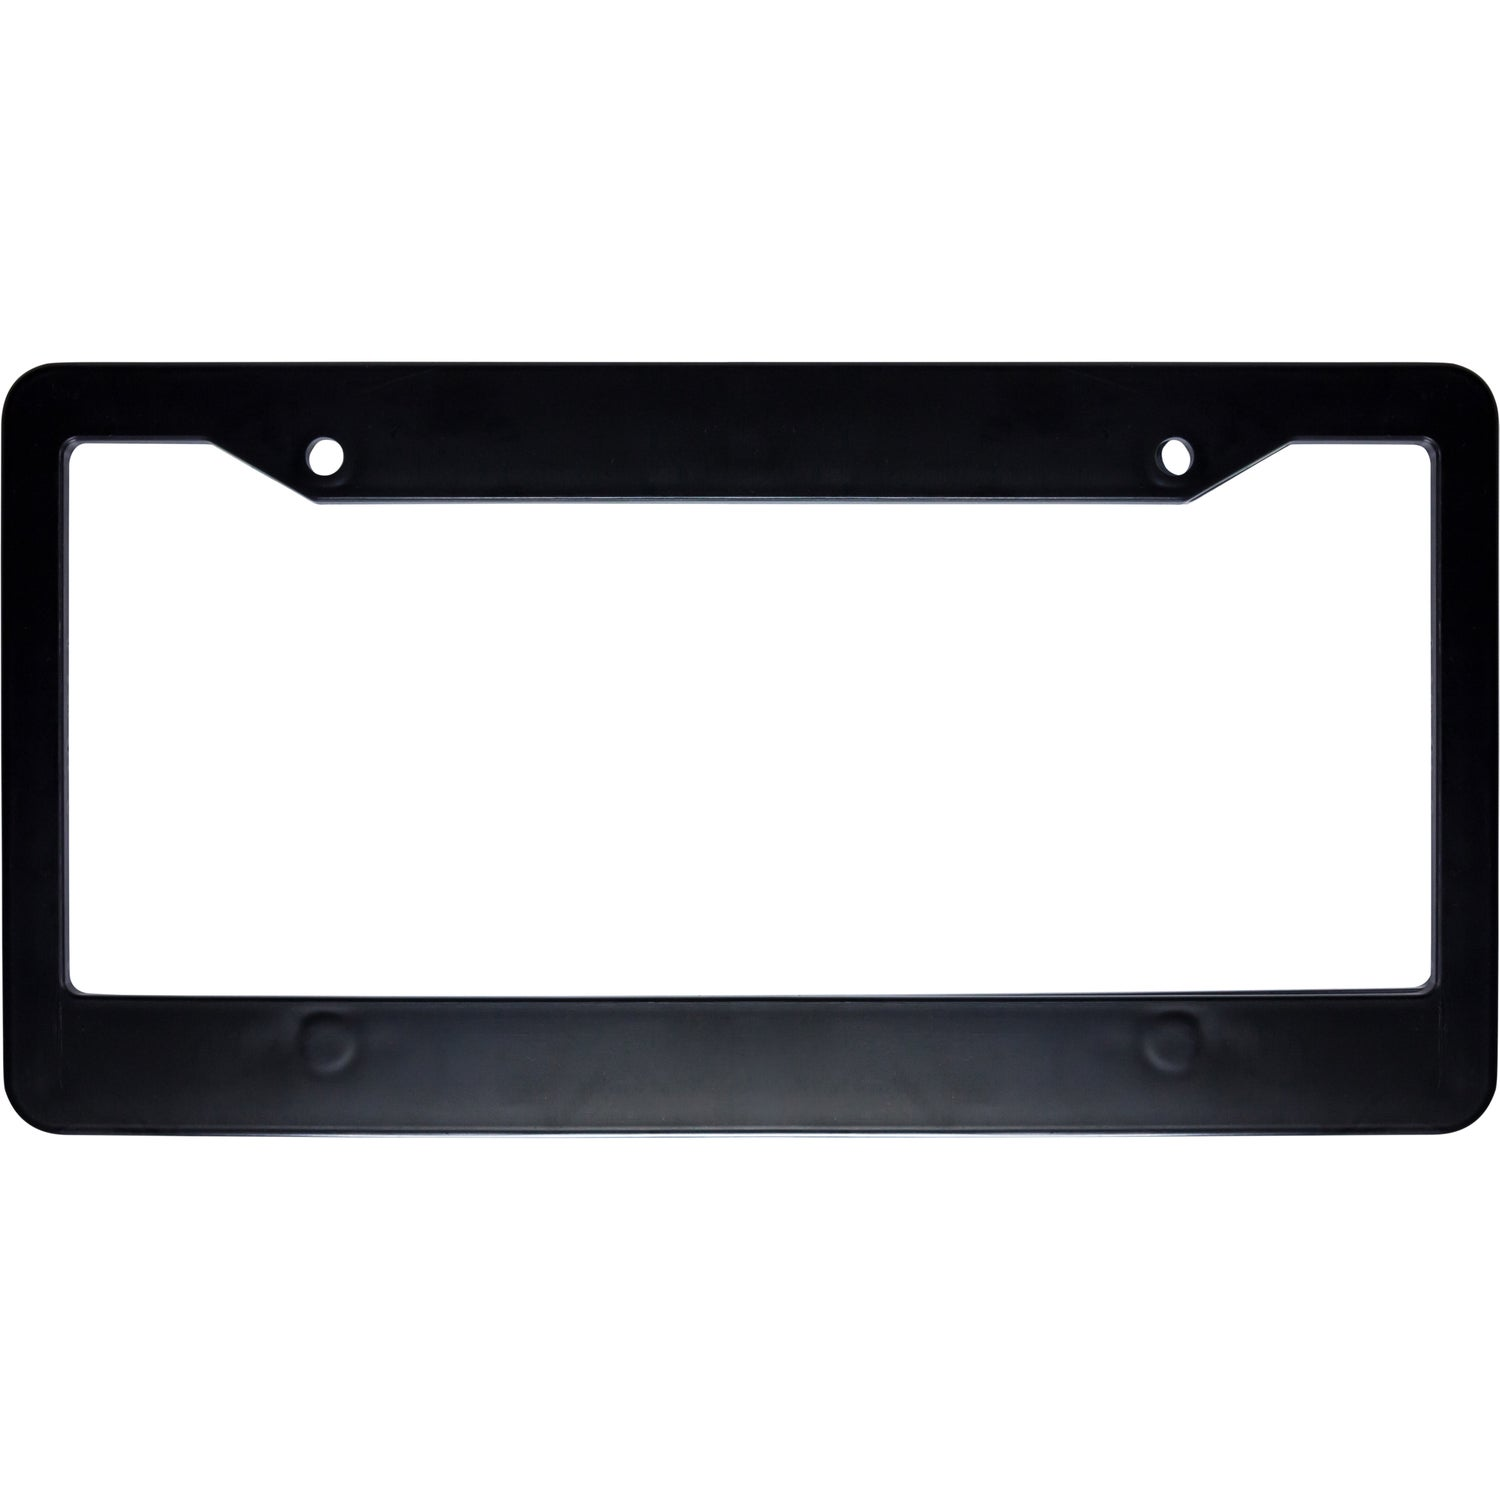 Promotional Auto License Plate Frames with Custom Logo for $0.657 Ea.